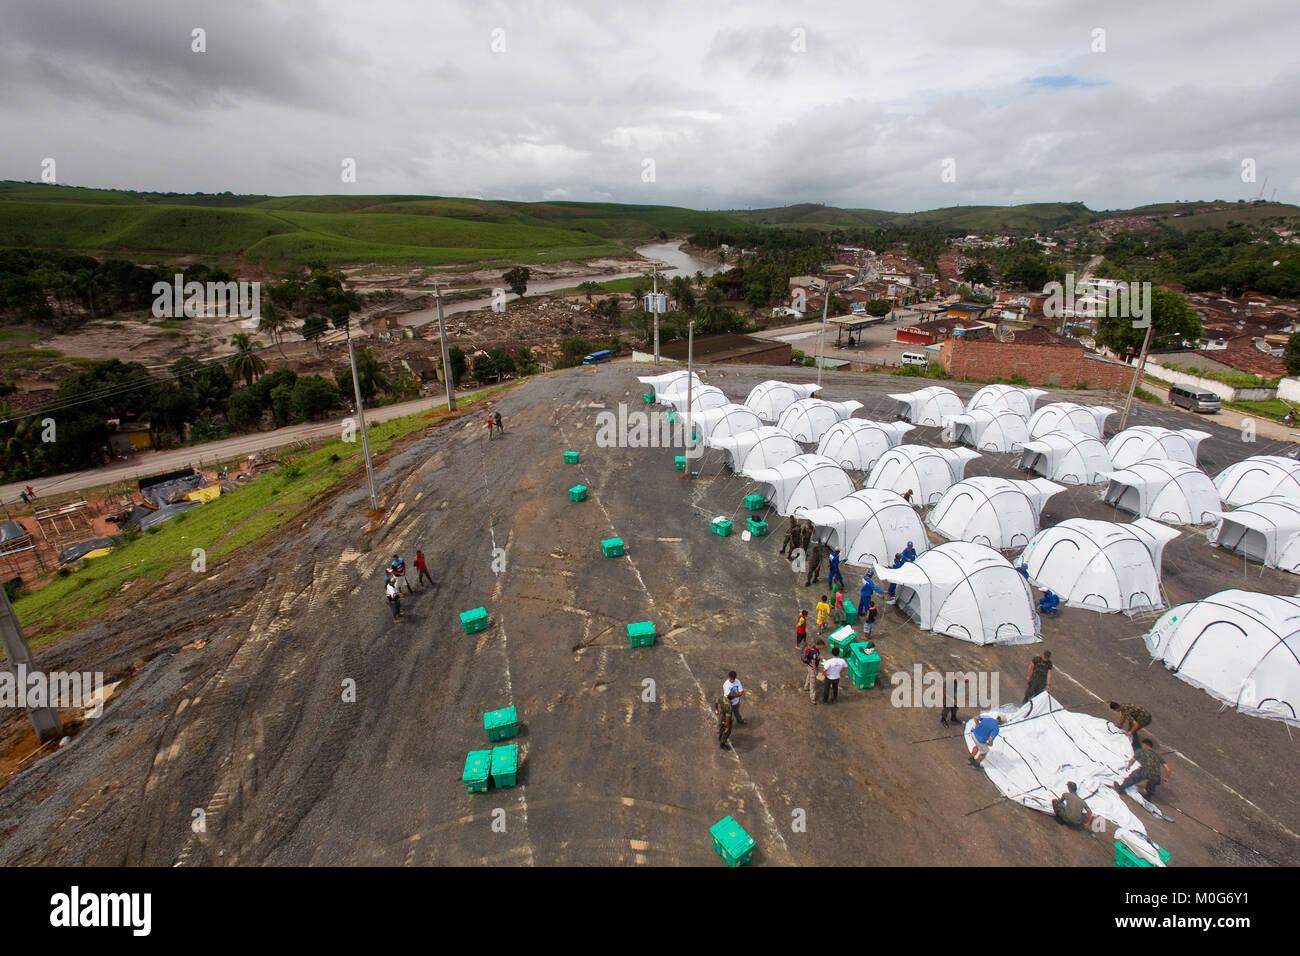 ShelterBox IDP camp at Aqua Preta, following flooding in Pernambuco State, Brazil - Stock Image